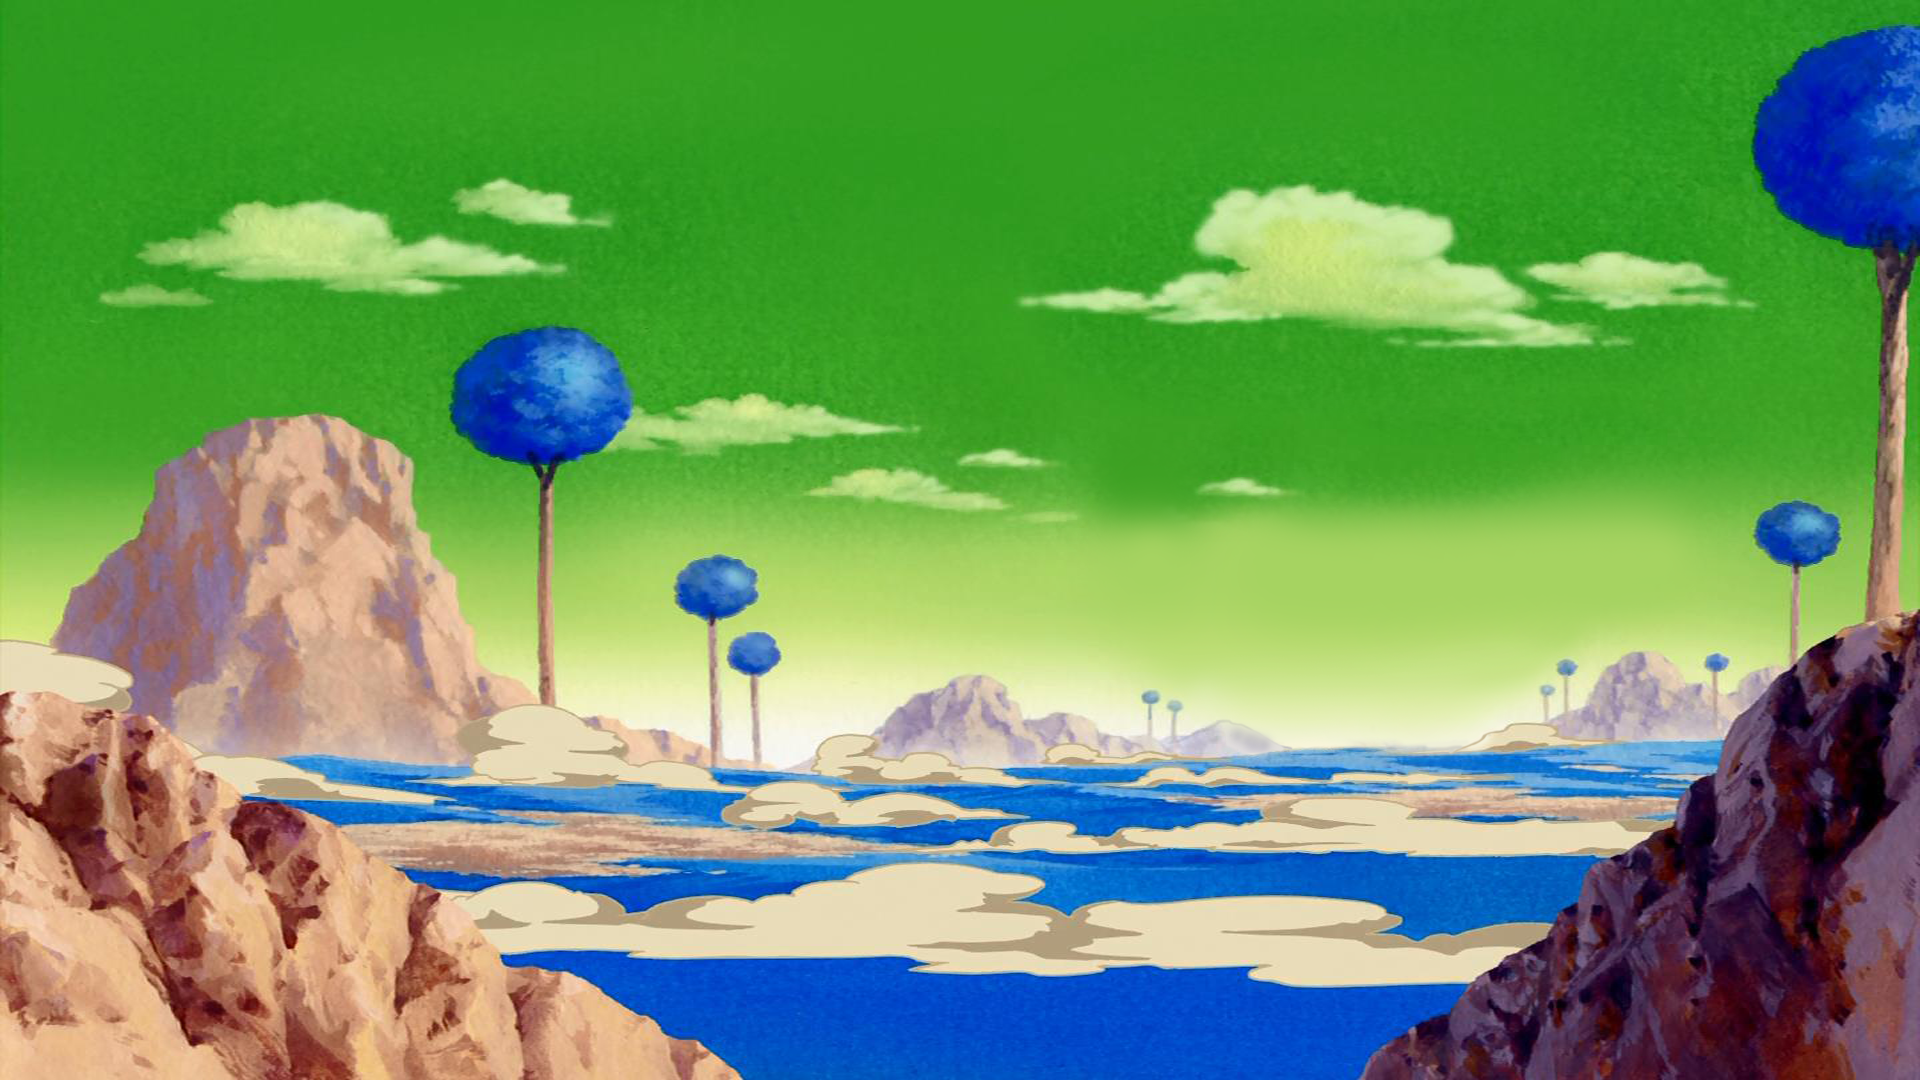 1920x1080 Planet Namek Wallpaper Background Image View Download Comment And Rate Wallpaper Abyss In 2020 Dragon Ball Anime Background Dragon Ball Z